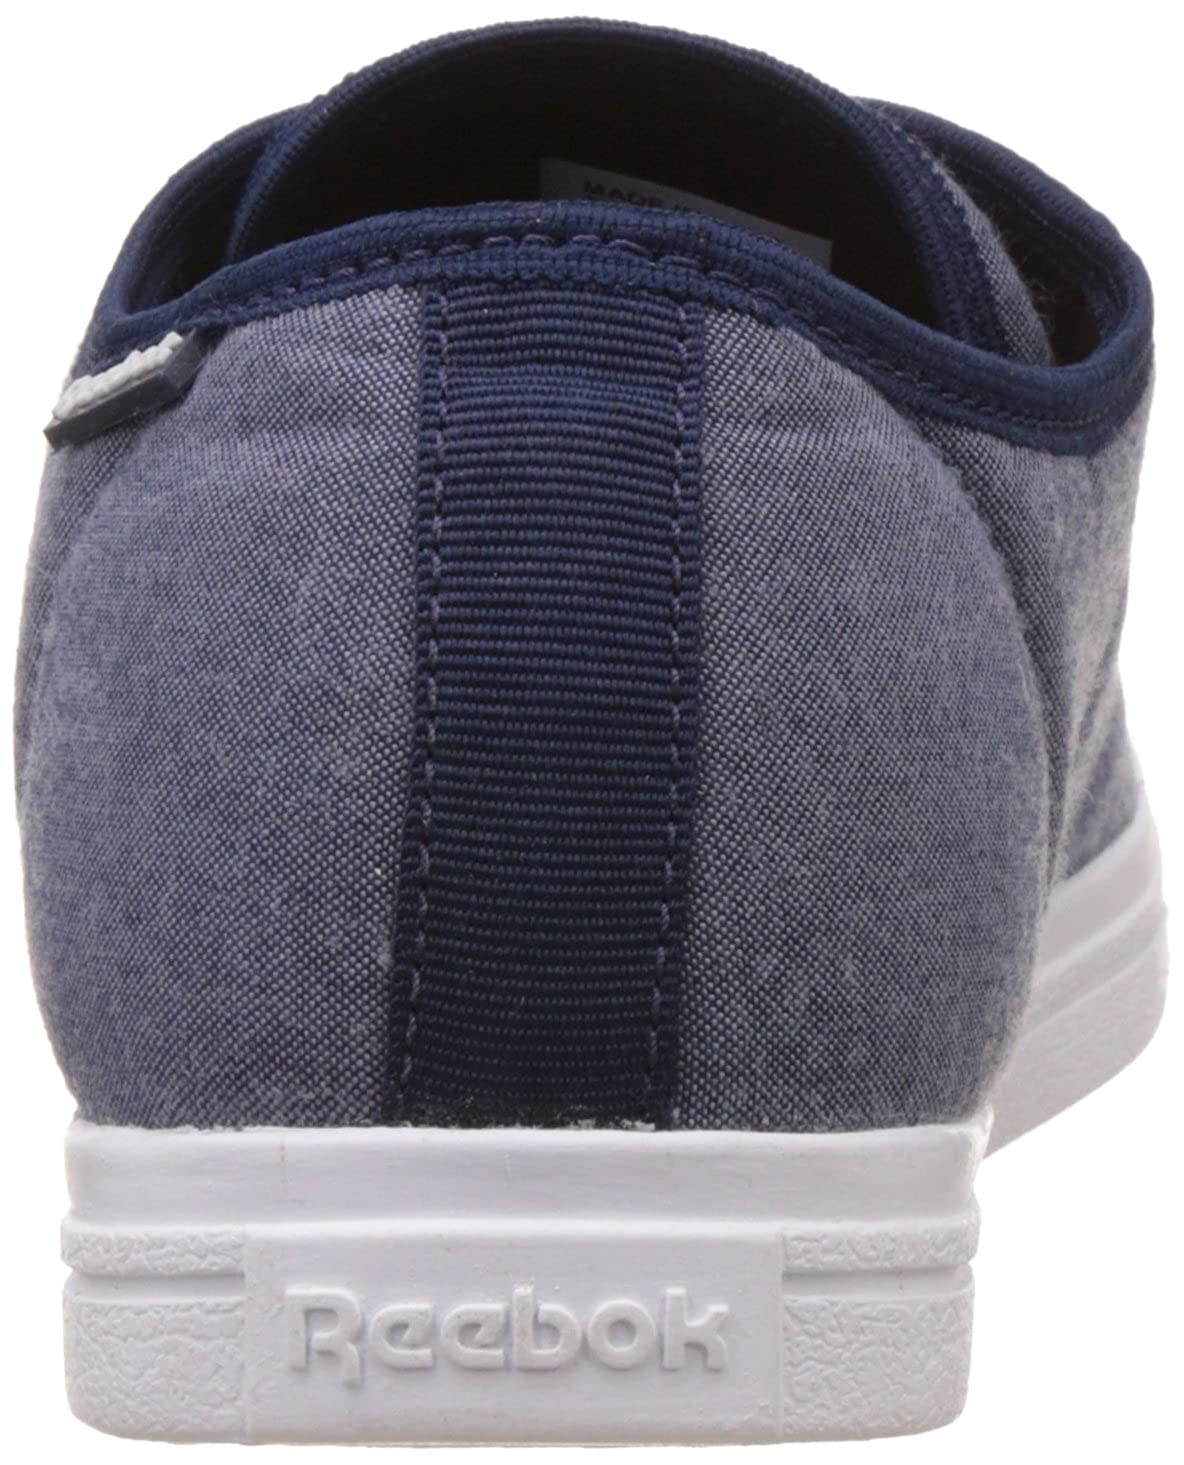 336c76f590df Reebok Classics Men s Classic Tenstall Sneakers  Buy Online at Low Prices  in India - Amazon.in